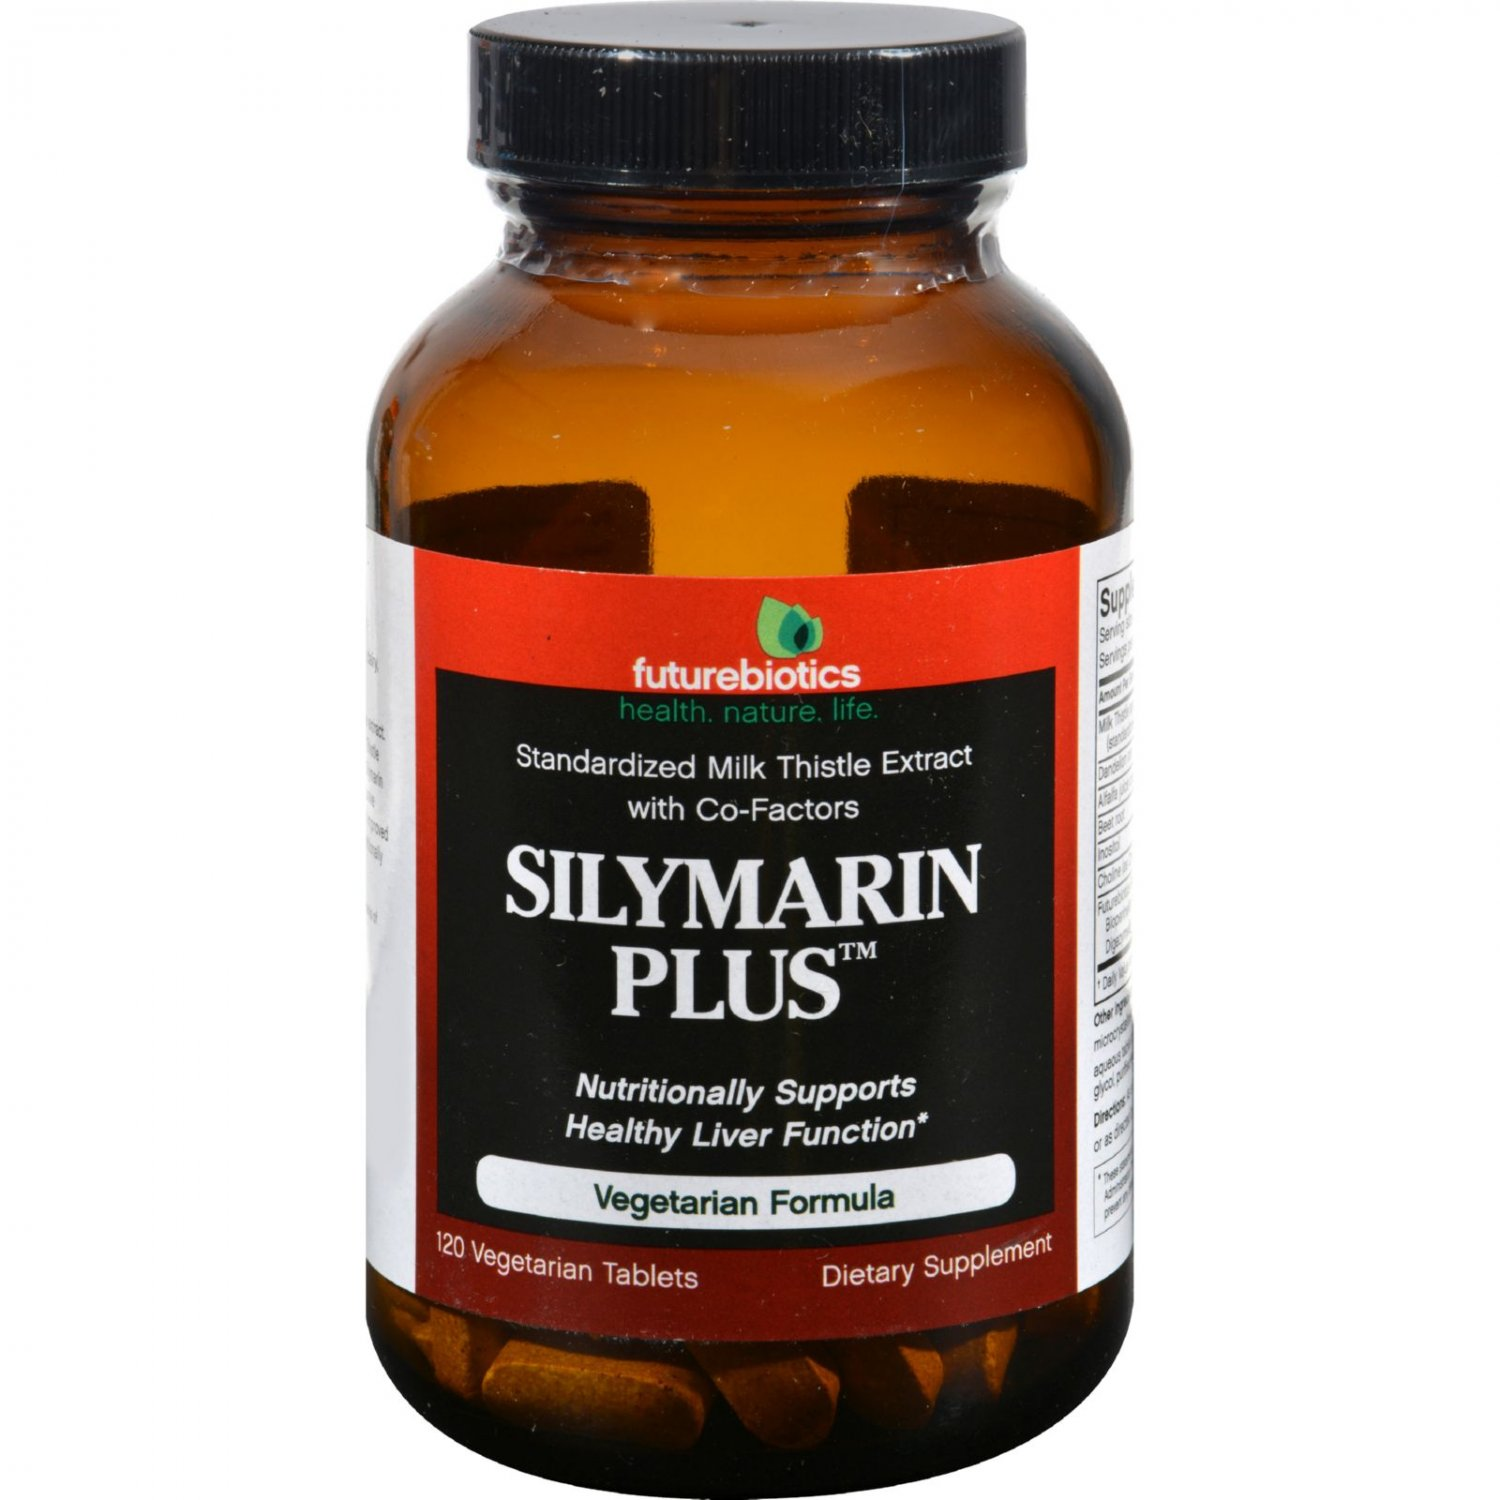 FutureBiotics Silymarin Plus - 120 Tablets